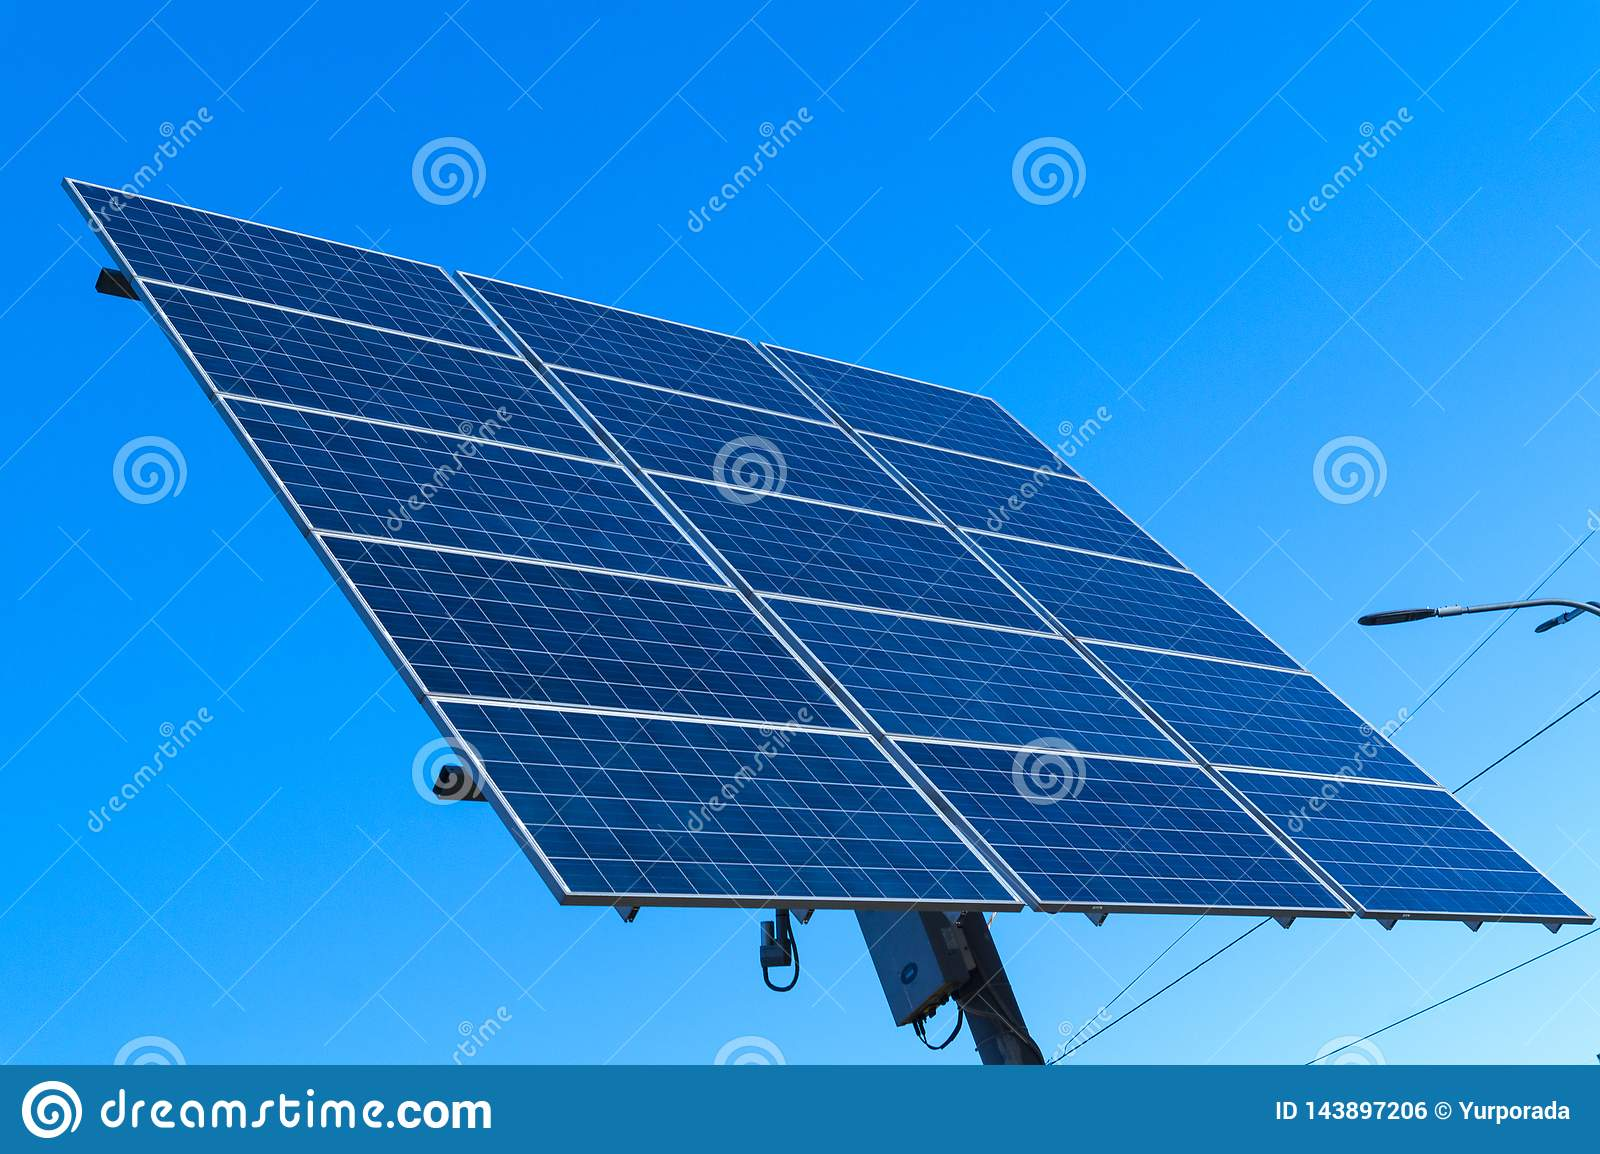 Solar panel, alternative electricity source - concept of sustainable resources